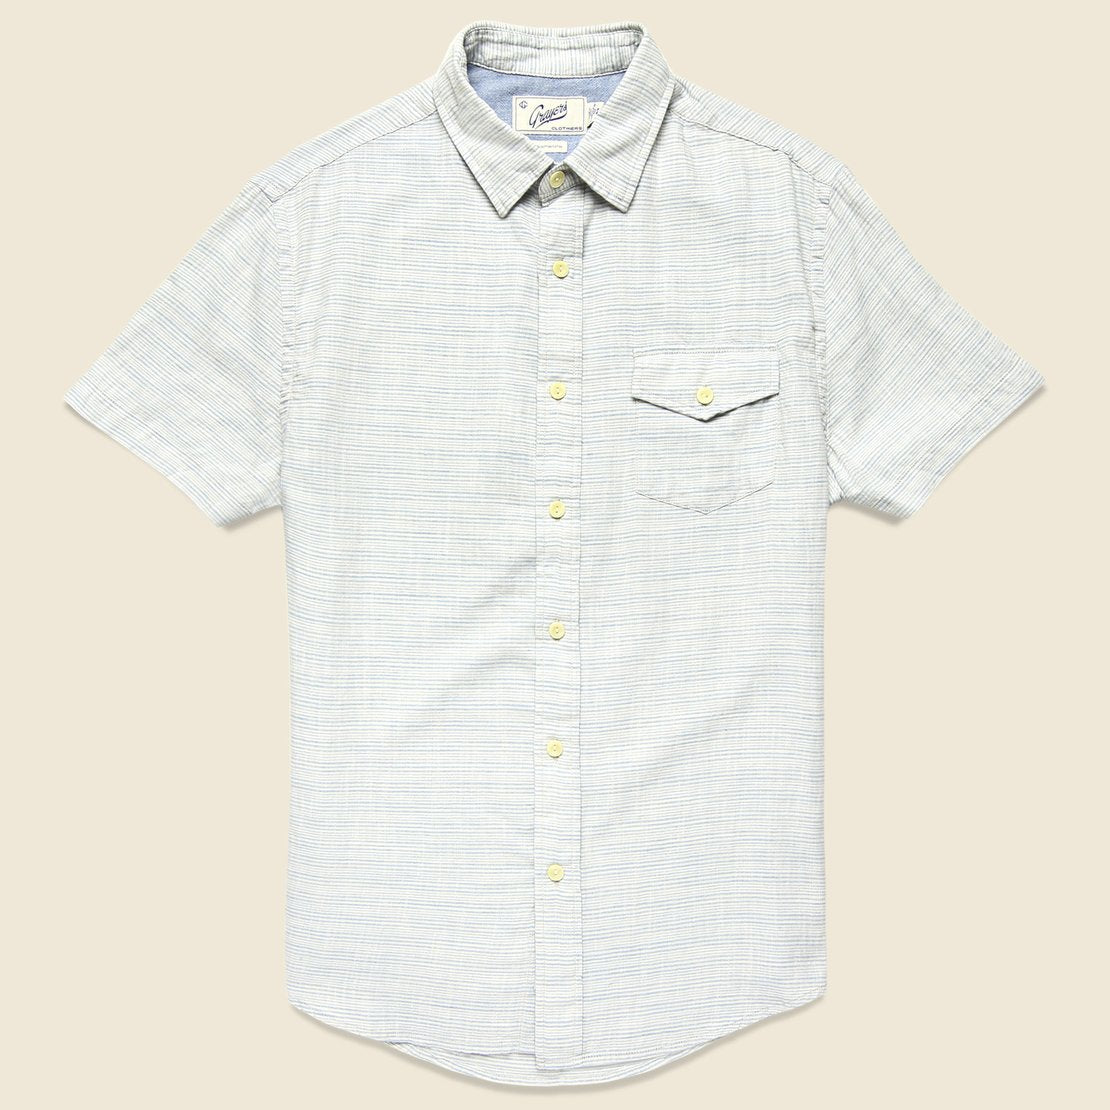 Grayers Horizon Summer Twill Shirt - Blue Cream Stripe